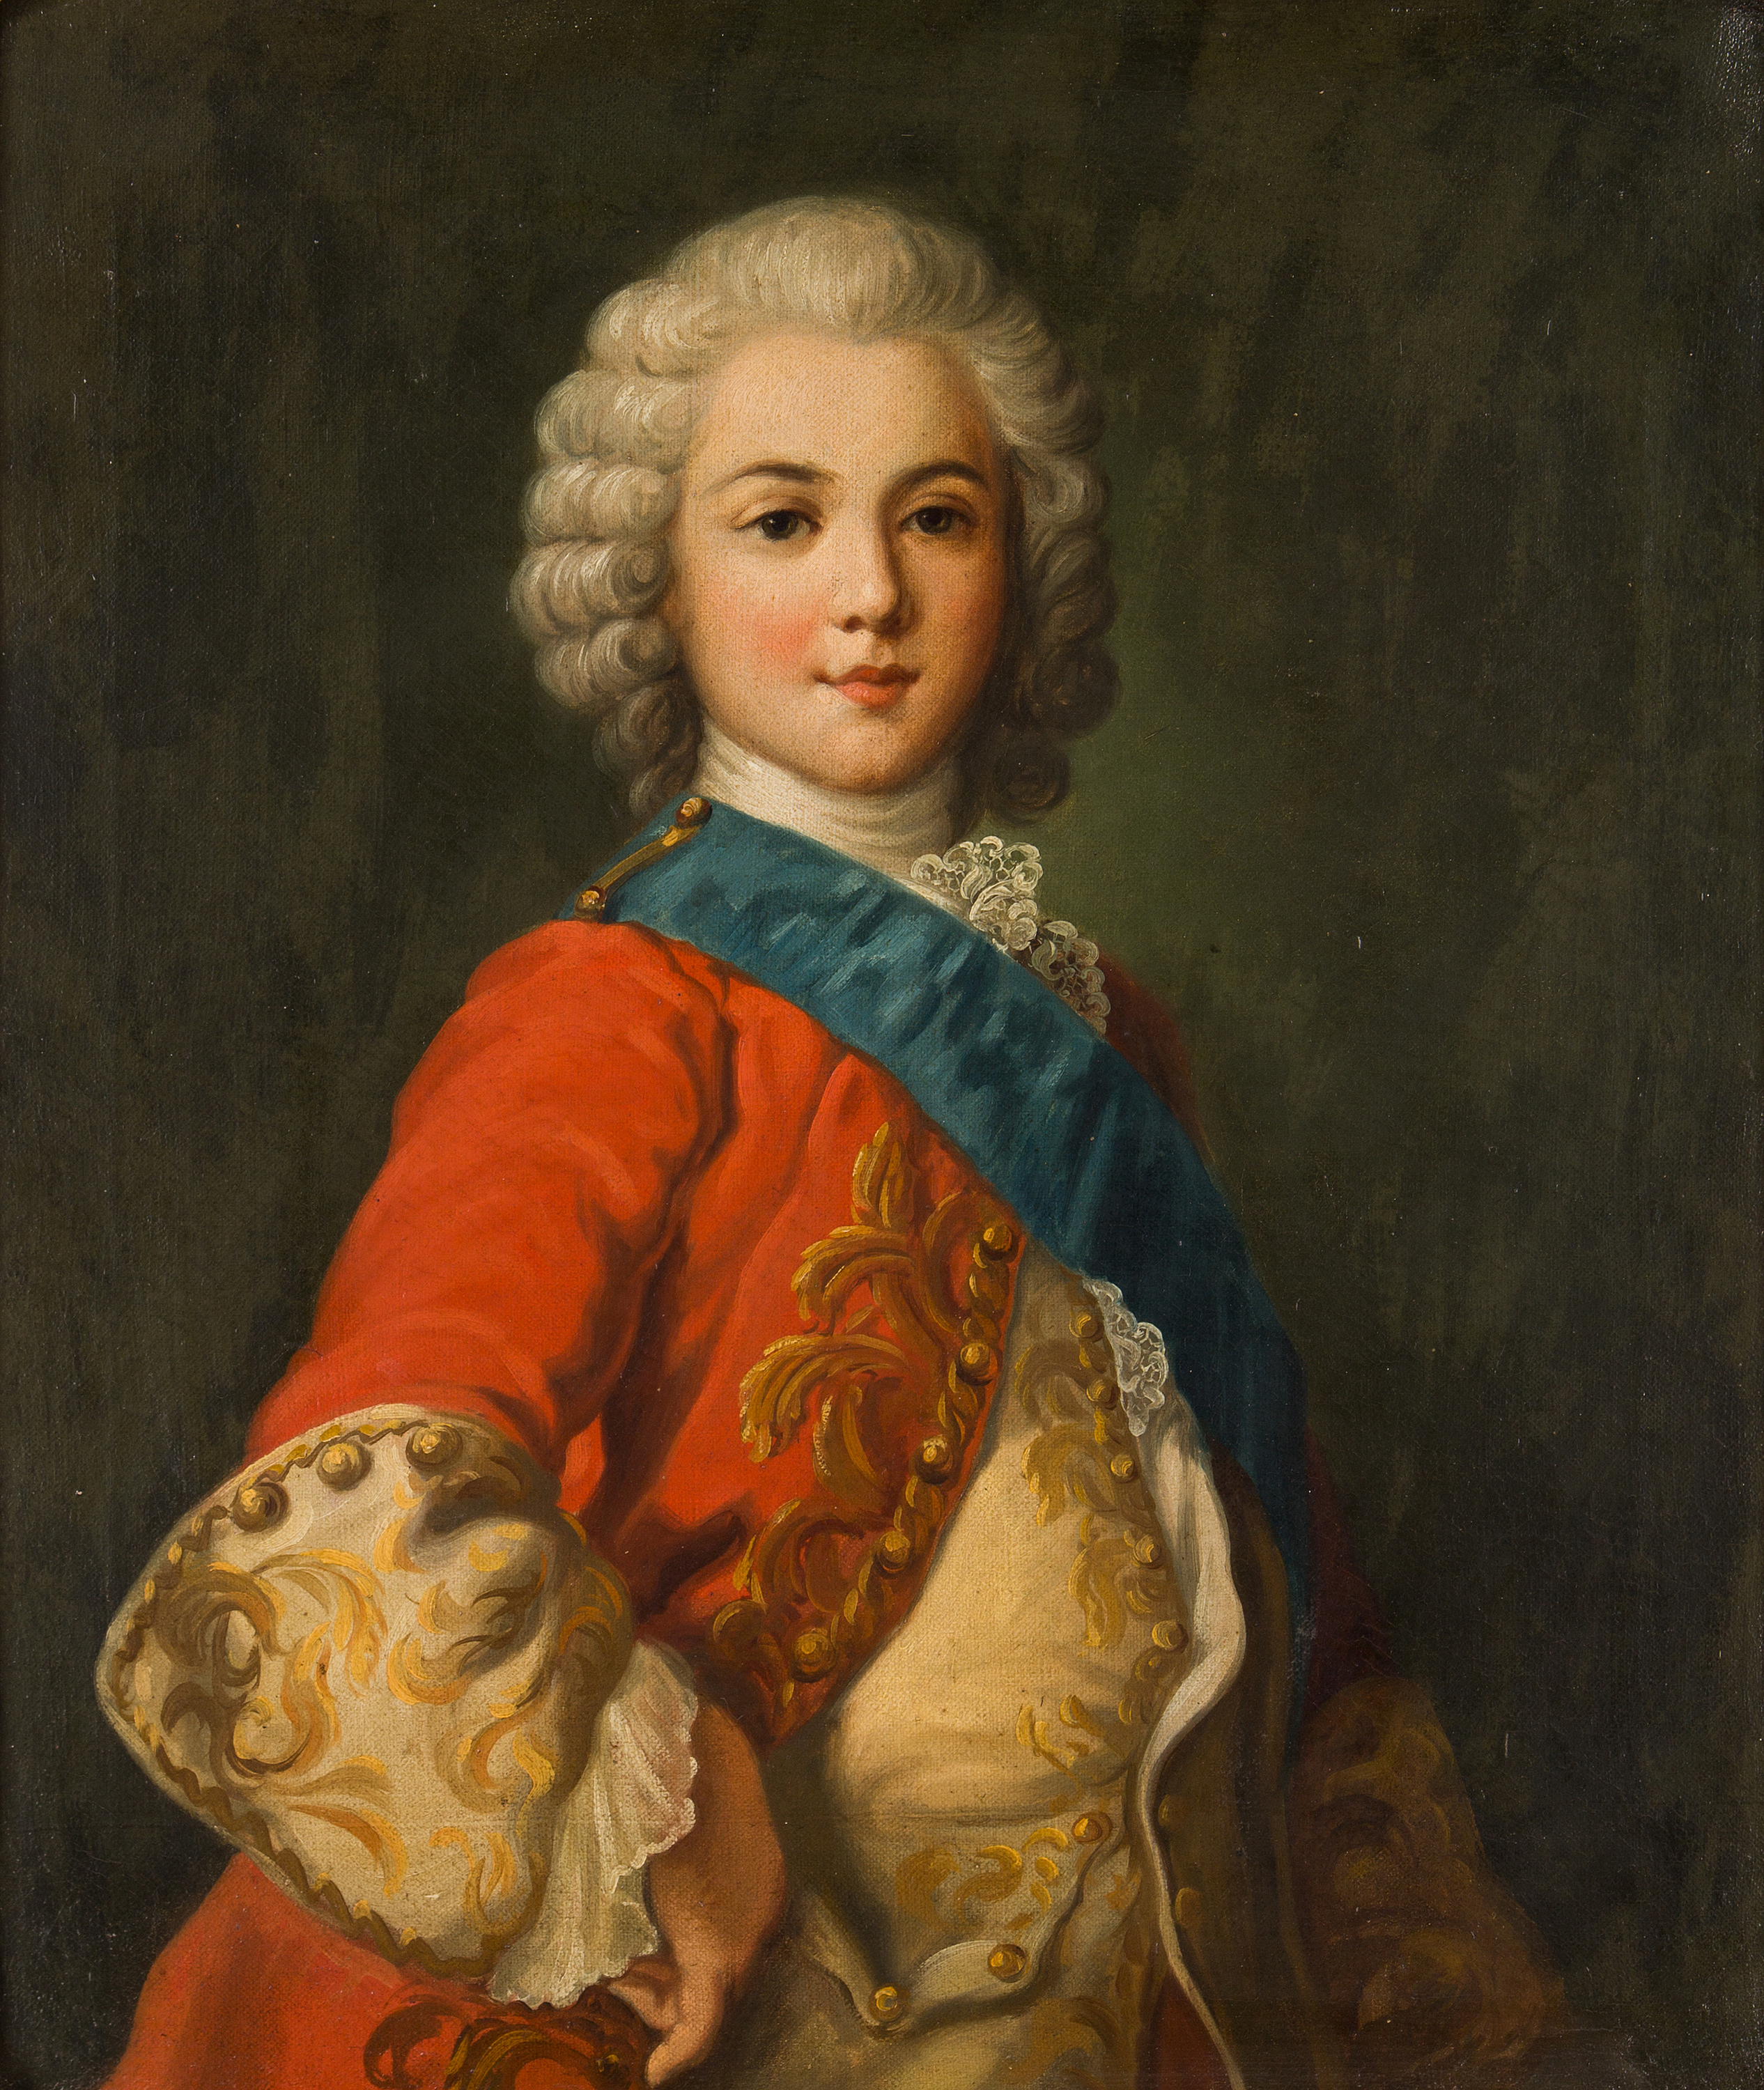 UNKNOWN ARTIST, probably Denmark, oil on canvas, not signed